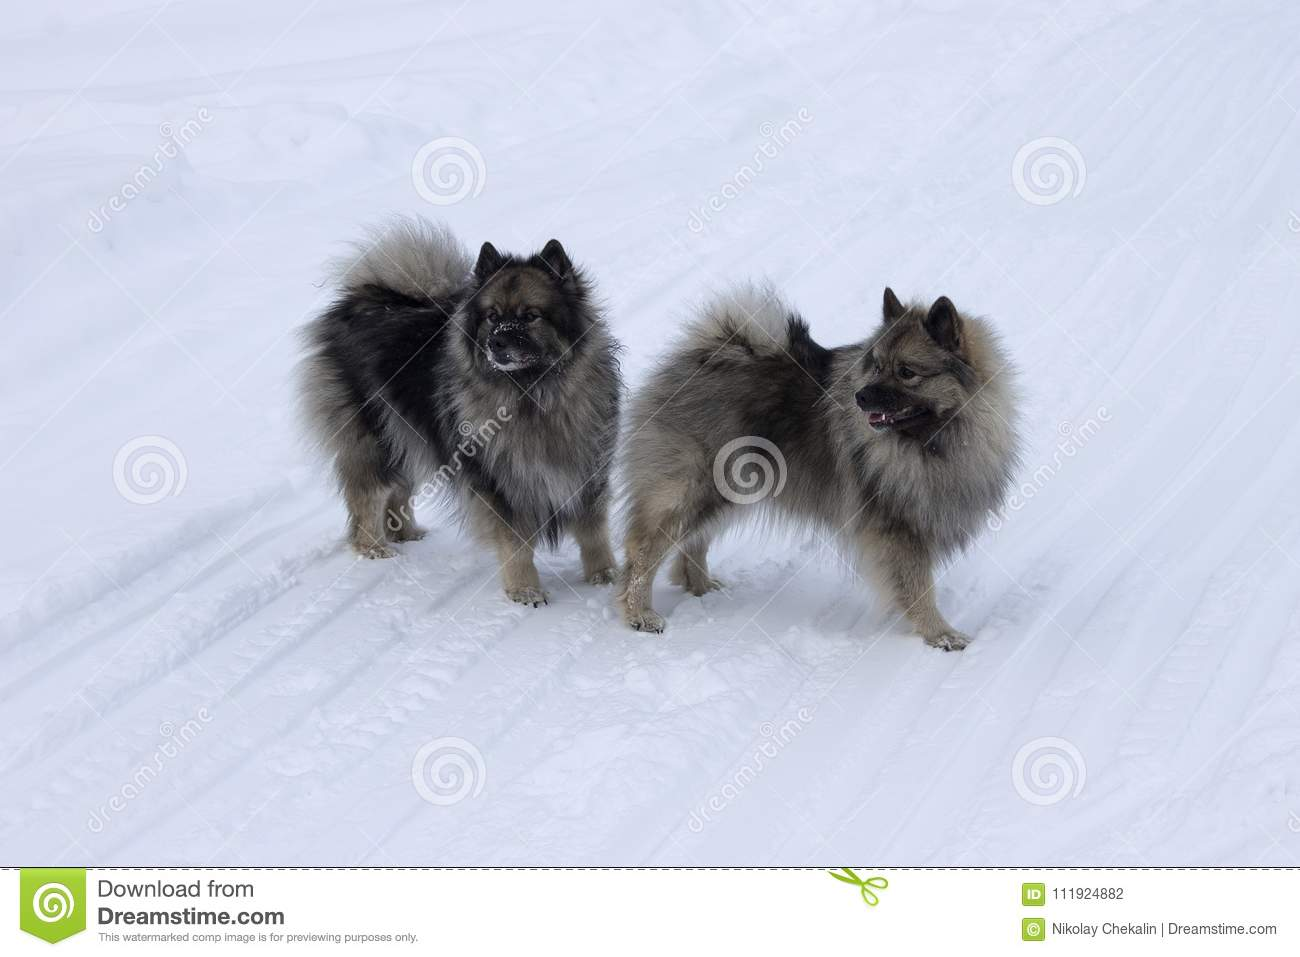 Wolfspitz dogs in the snow